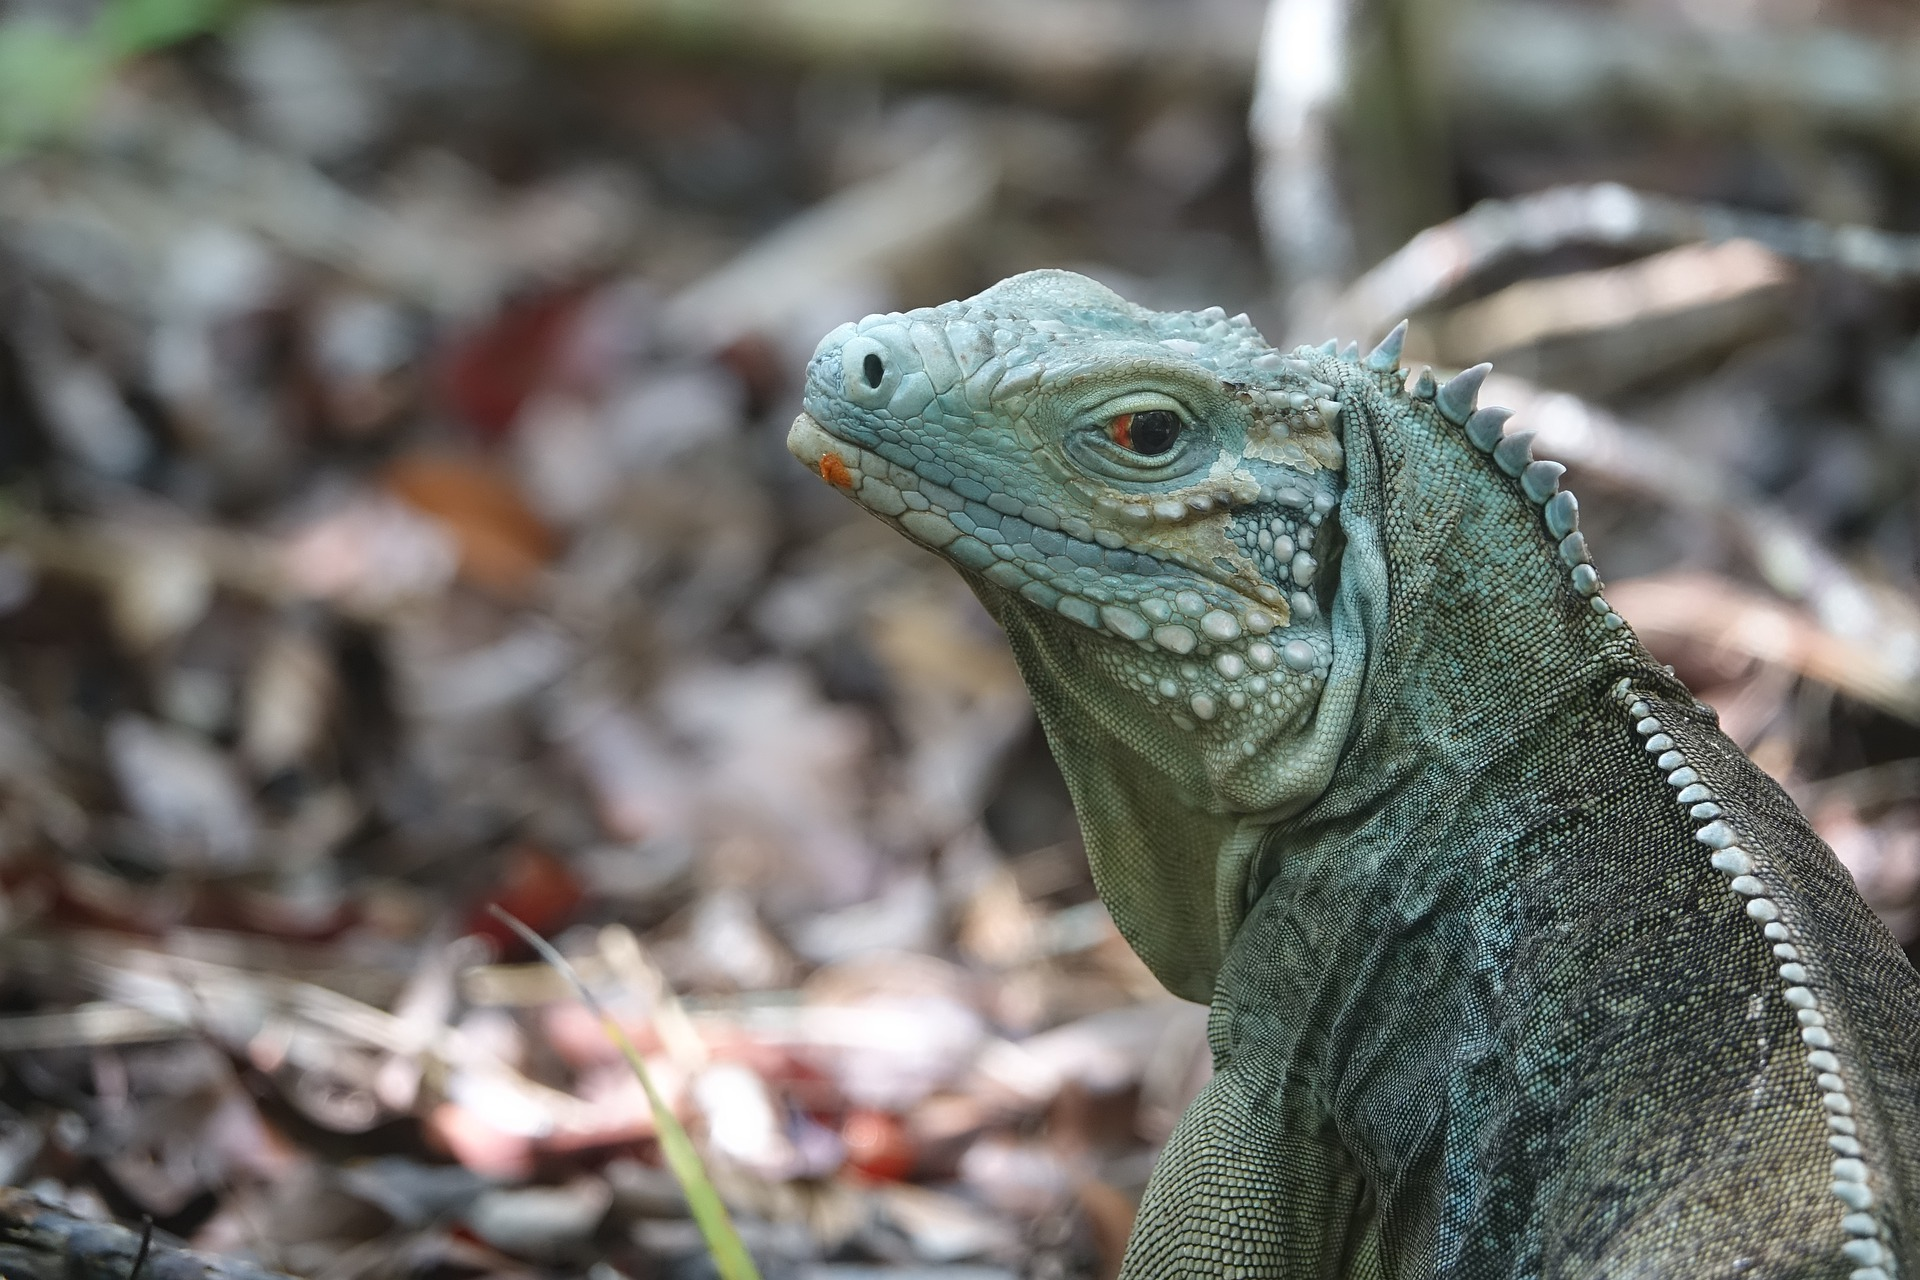 A blue iguana looks over its left shoulder into the camera